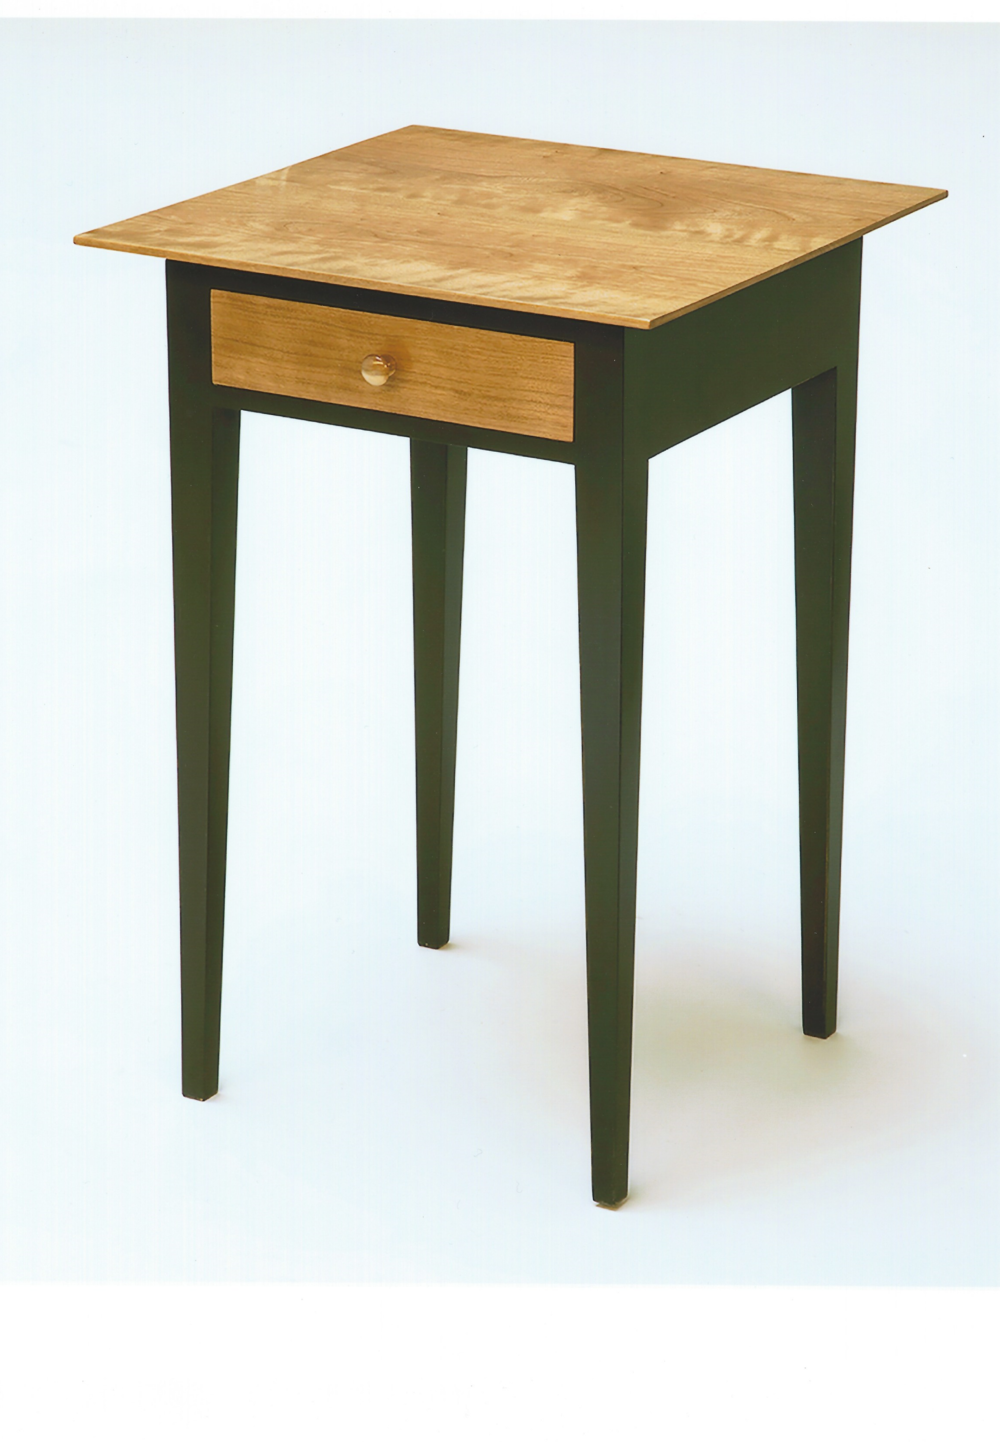 "This is a Shaker style nightstand with clean crisp lines. Cherry is used for the top, drawer front and knob. Poplar is used for legs, rails and drawer parts. Hand cut dovetails connect the front, back and sides of the drawer. The drawer bottom slides in a grove and is held in place by a single screw. Legs, sides and back are mortised and tenoned together. Cherry parts are French polished and poplar parts are finished with forest green milk paint with an oil and urethane top coat. This table is for sale at $450.00. Dimension: 26"" high x 18"" wide x 18"" deep."